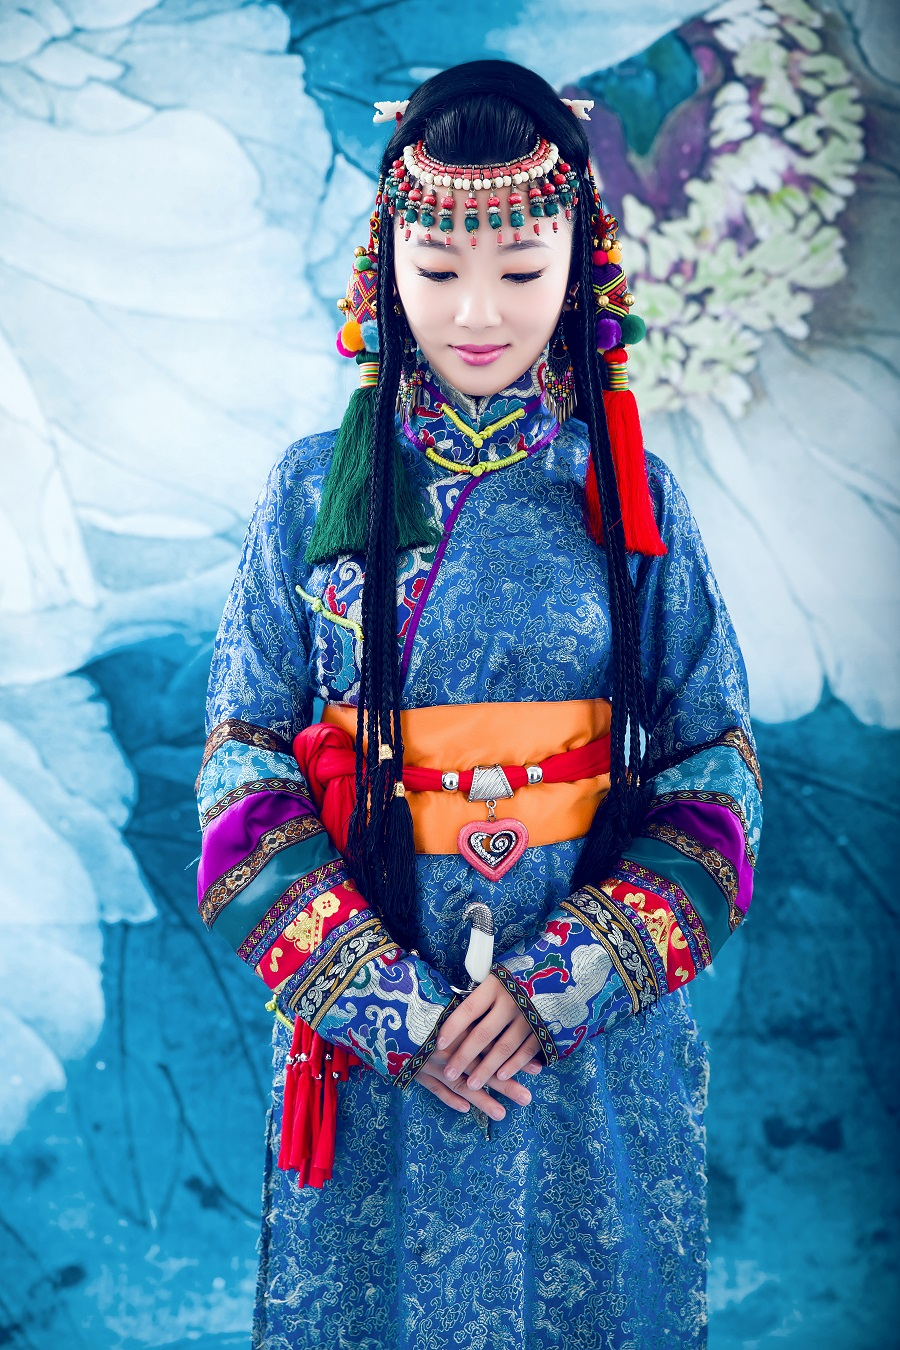 Queen for a day: a glamour photoshoot in China | slightly astray